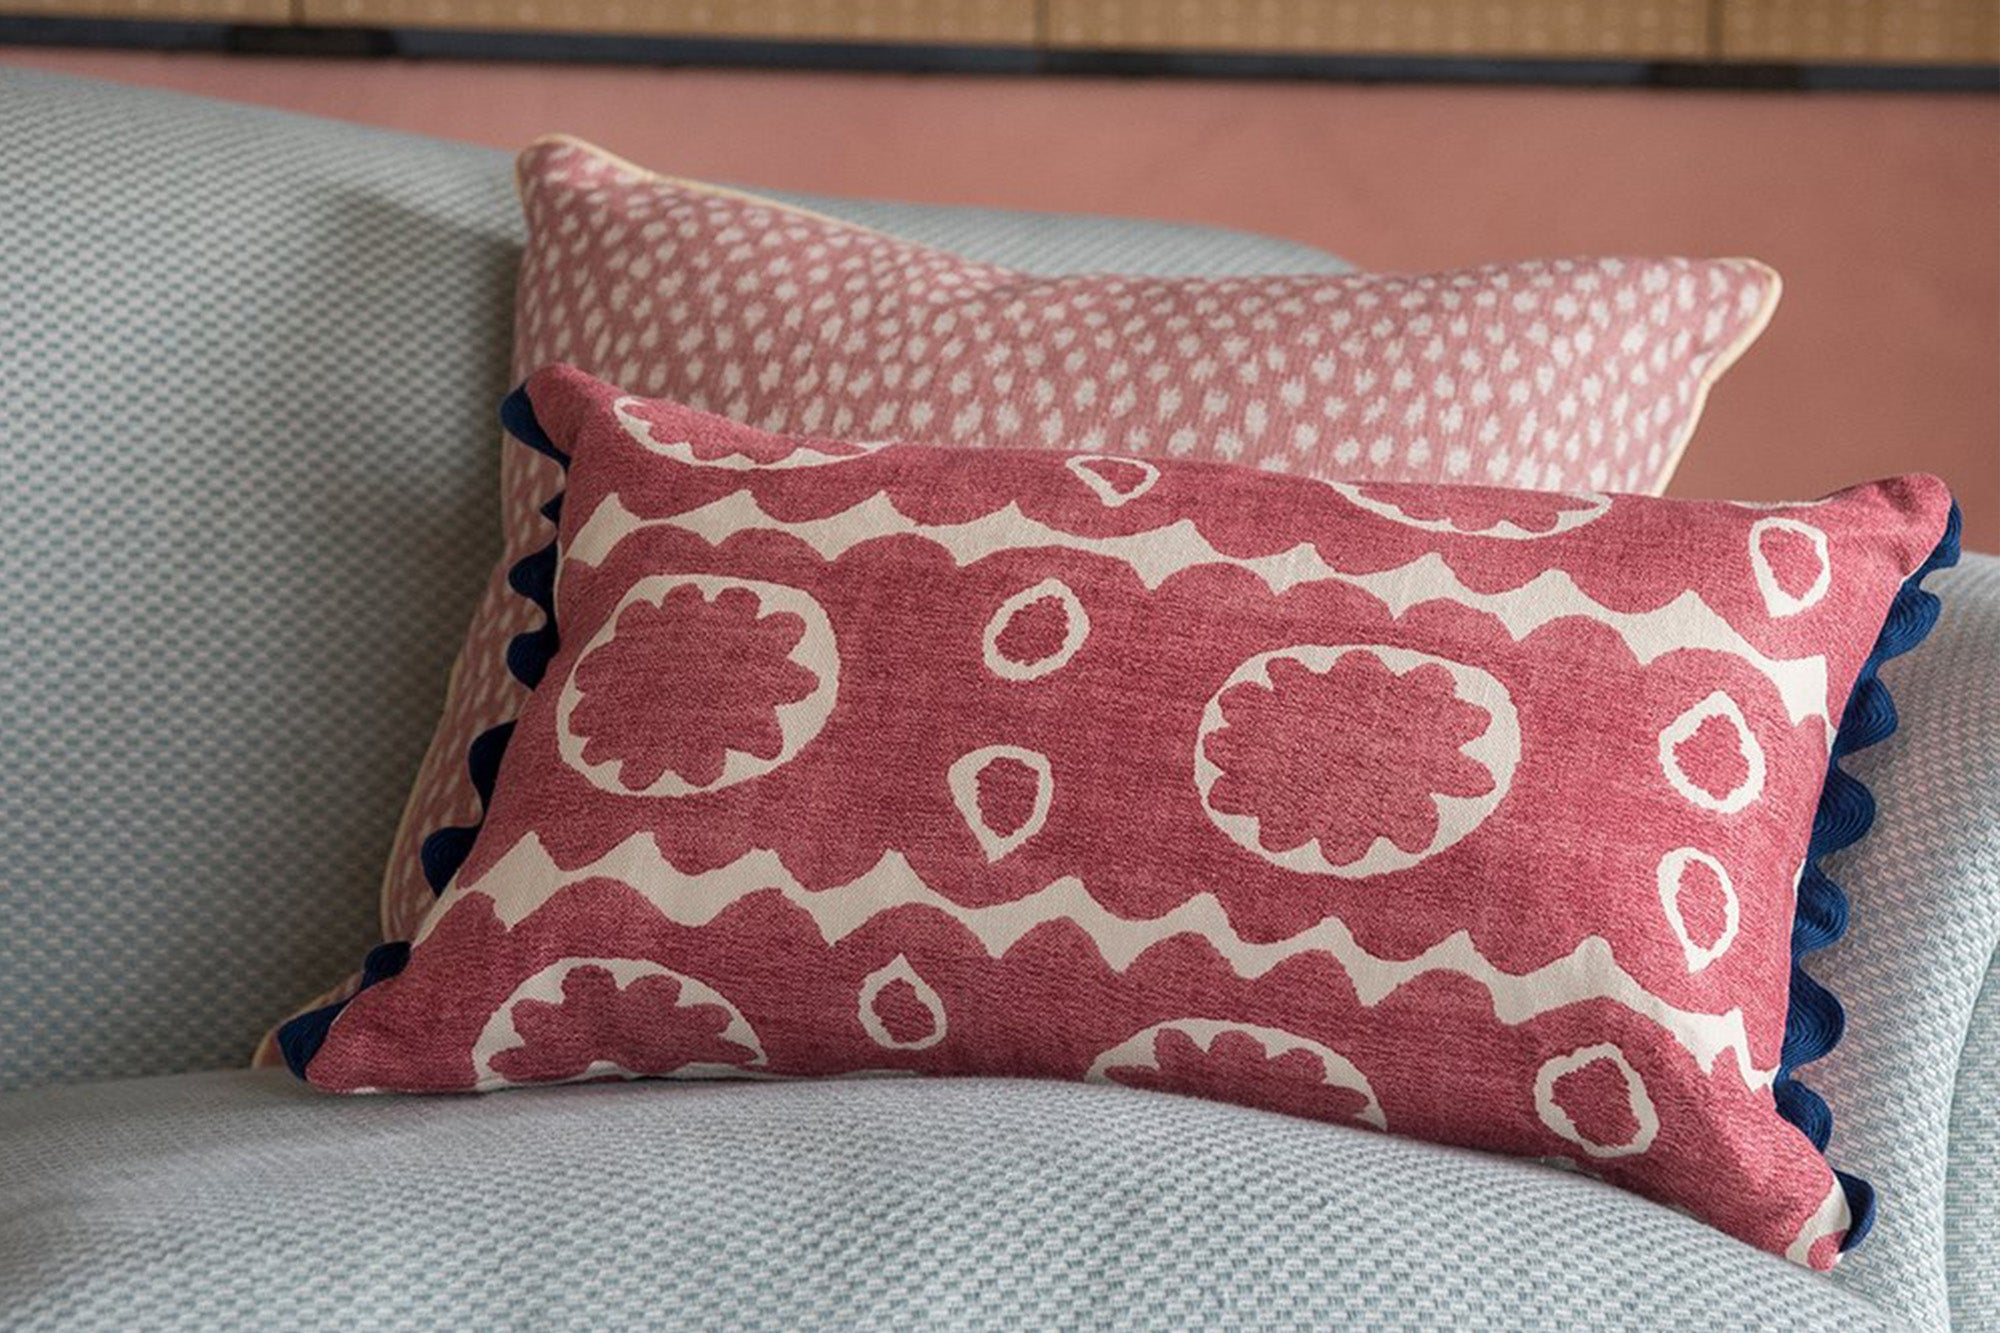 Wicklewood Osborne cushion in red and Kemble cushion in red